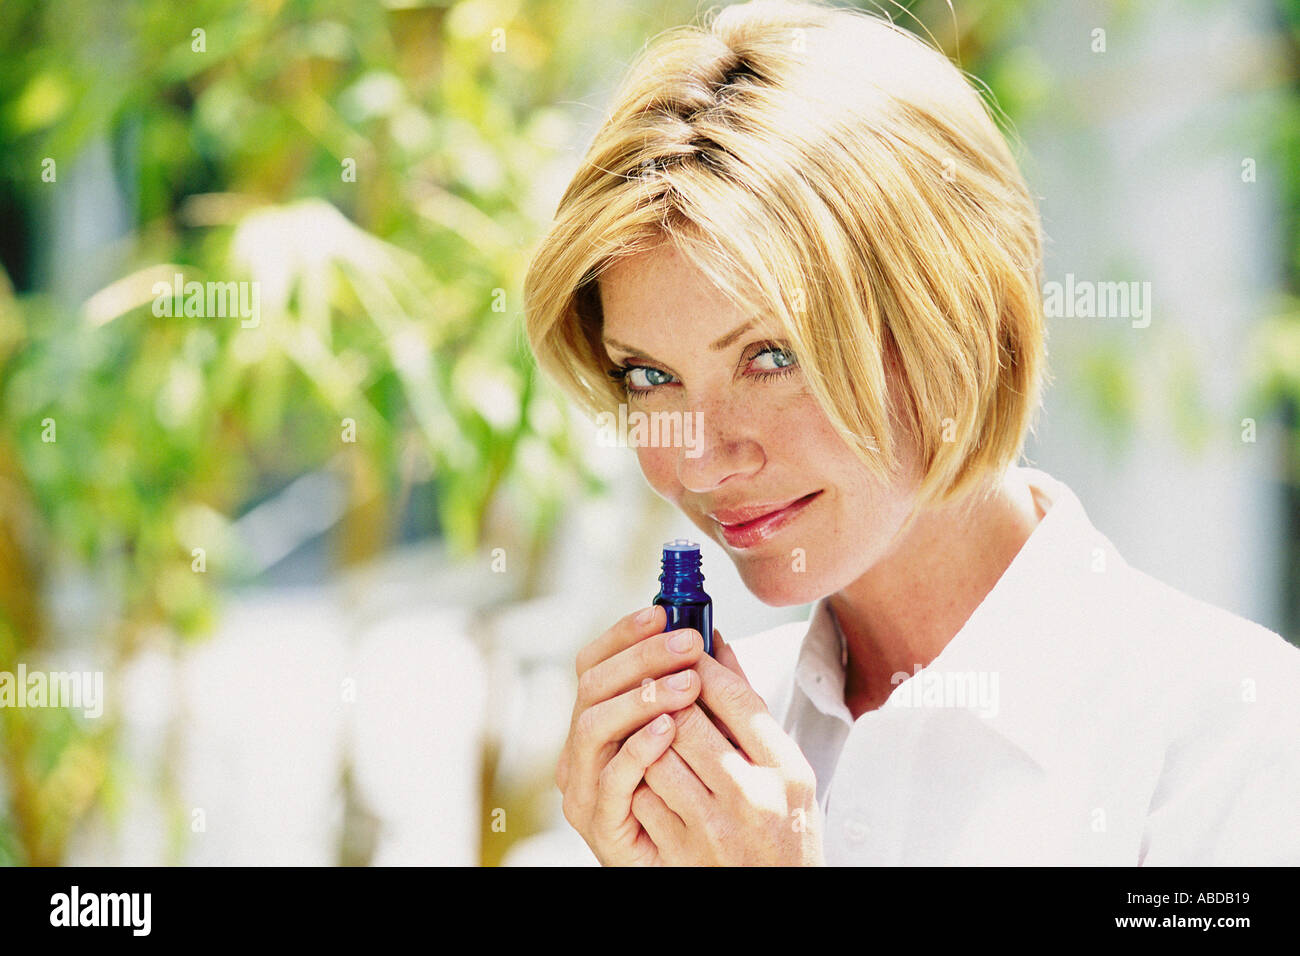 Woman smelling scent outdoors - Stock Image